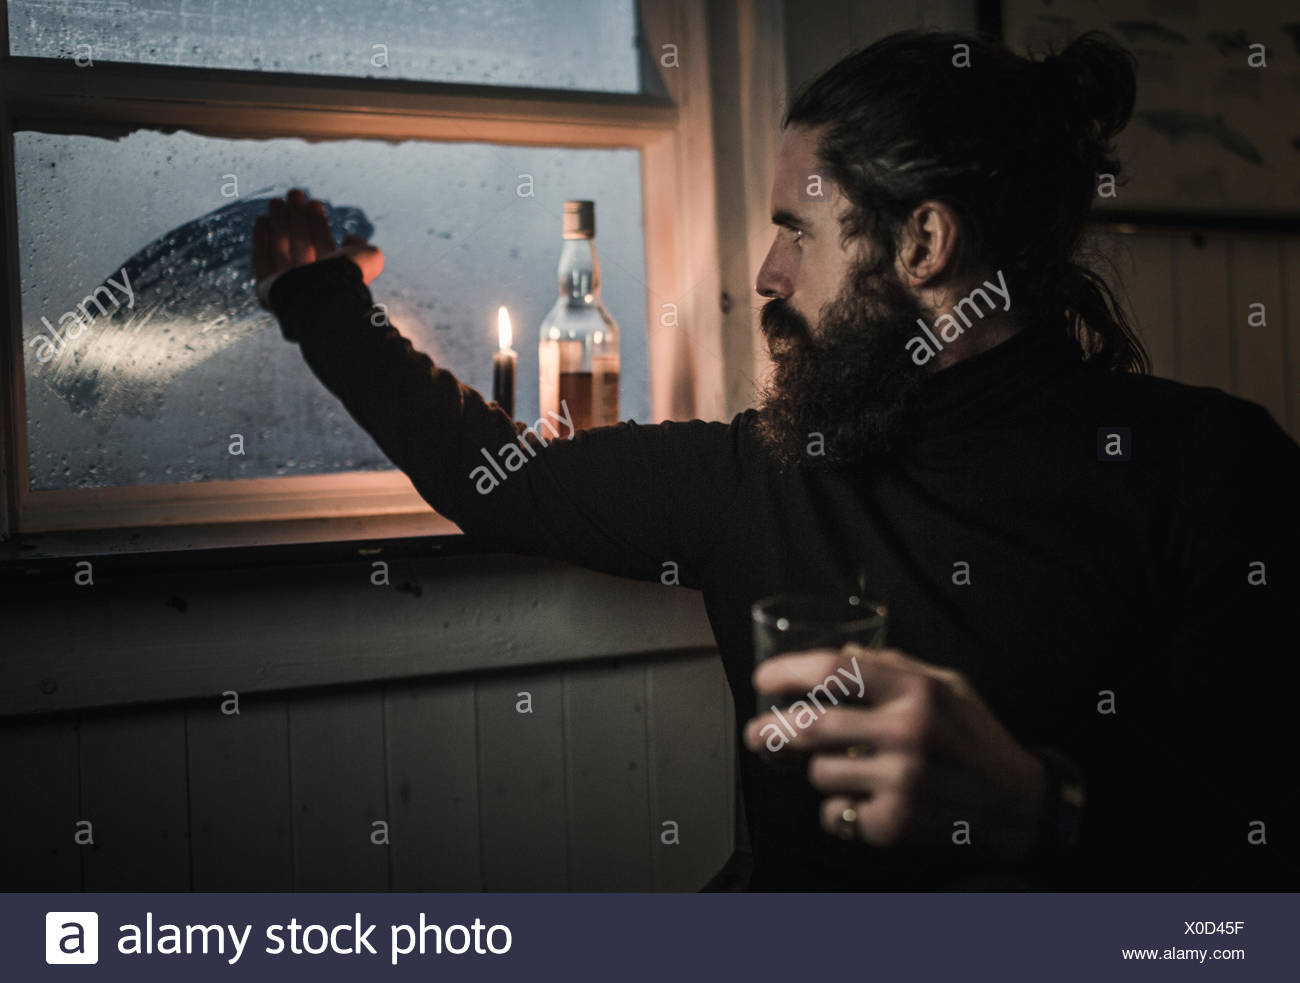 A man sitting alone in a room with a bottle of whisky and a glass, wiping condensation off window - Stock Image